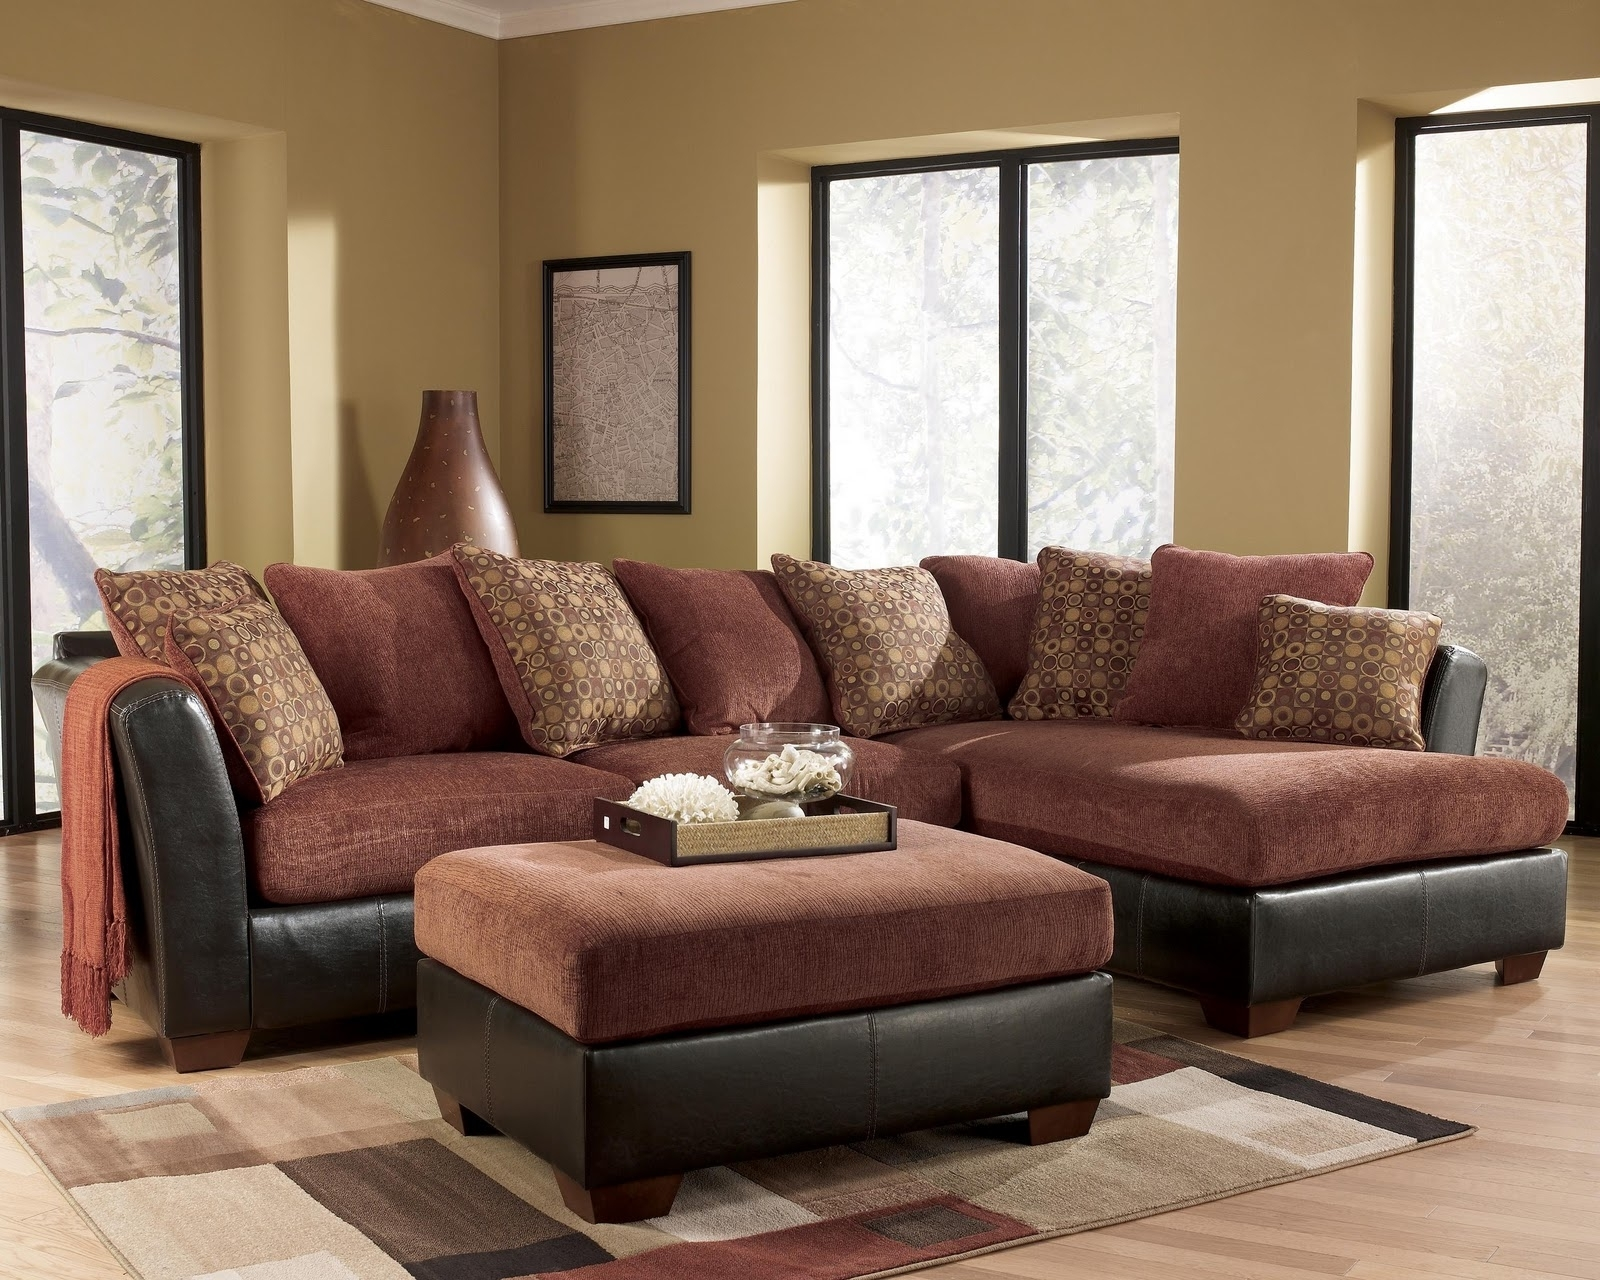 Ashley Furniture Sectional Sofas (View 6 of 15)